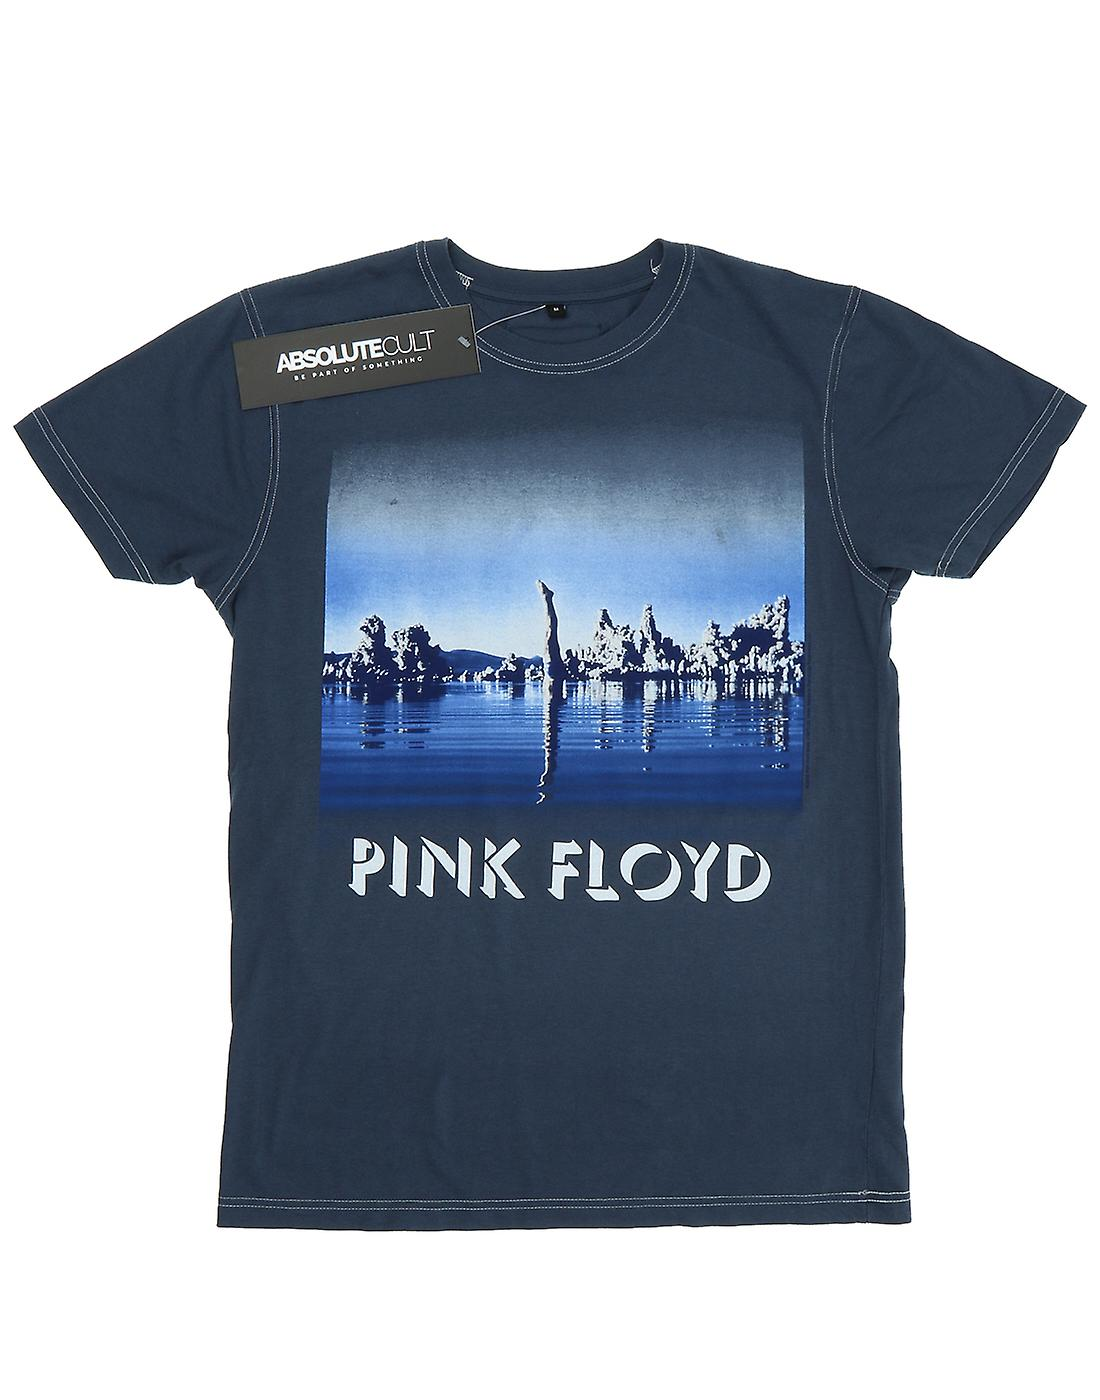 Aftershow Men's Pink Floyd Iceberg T-Shirt